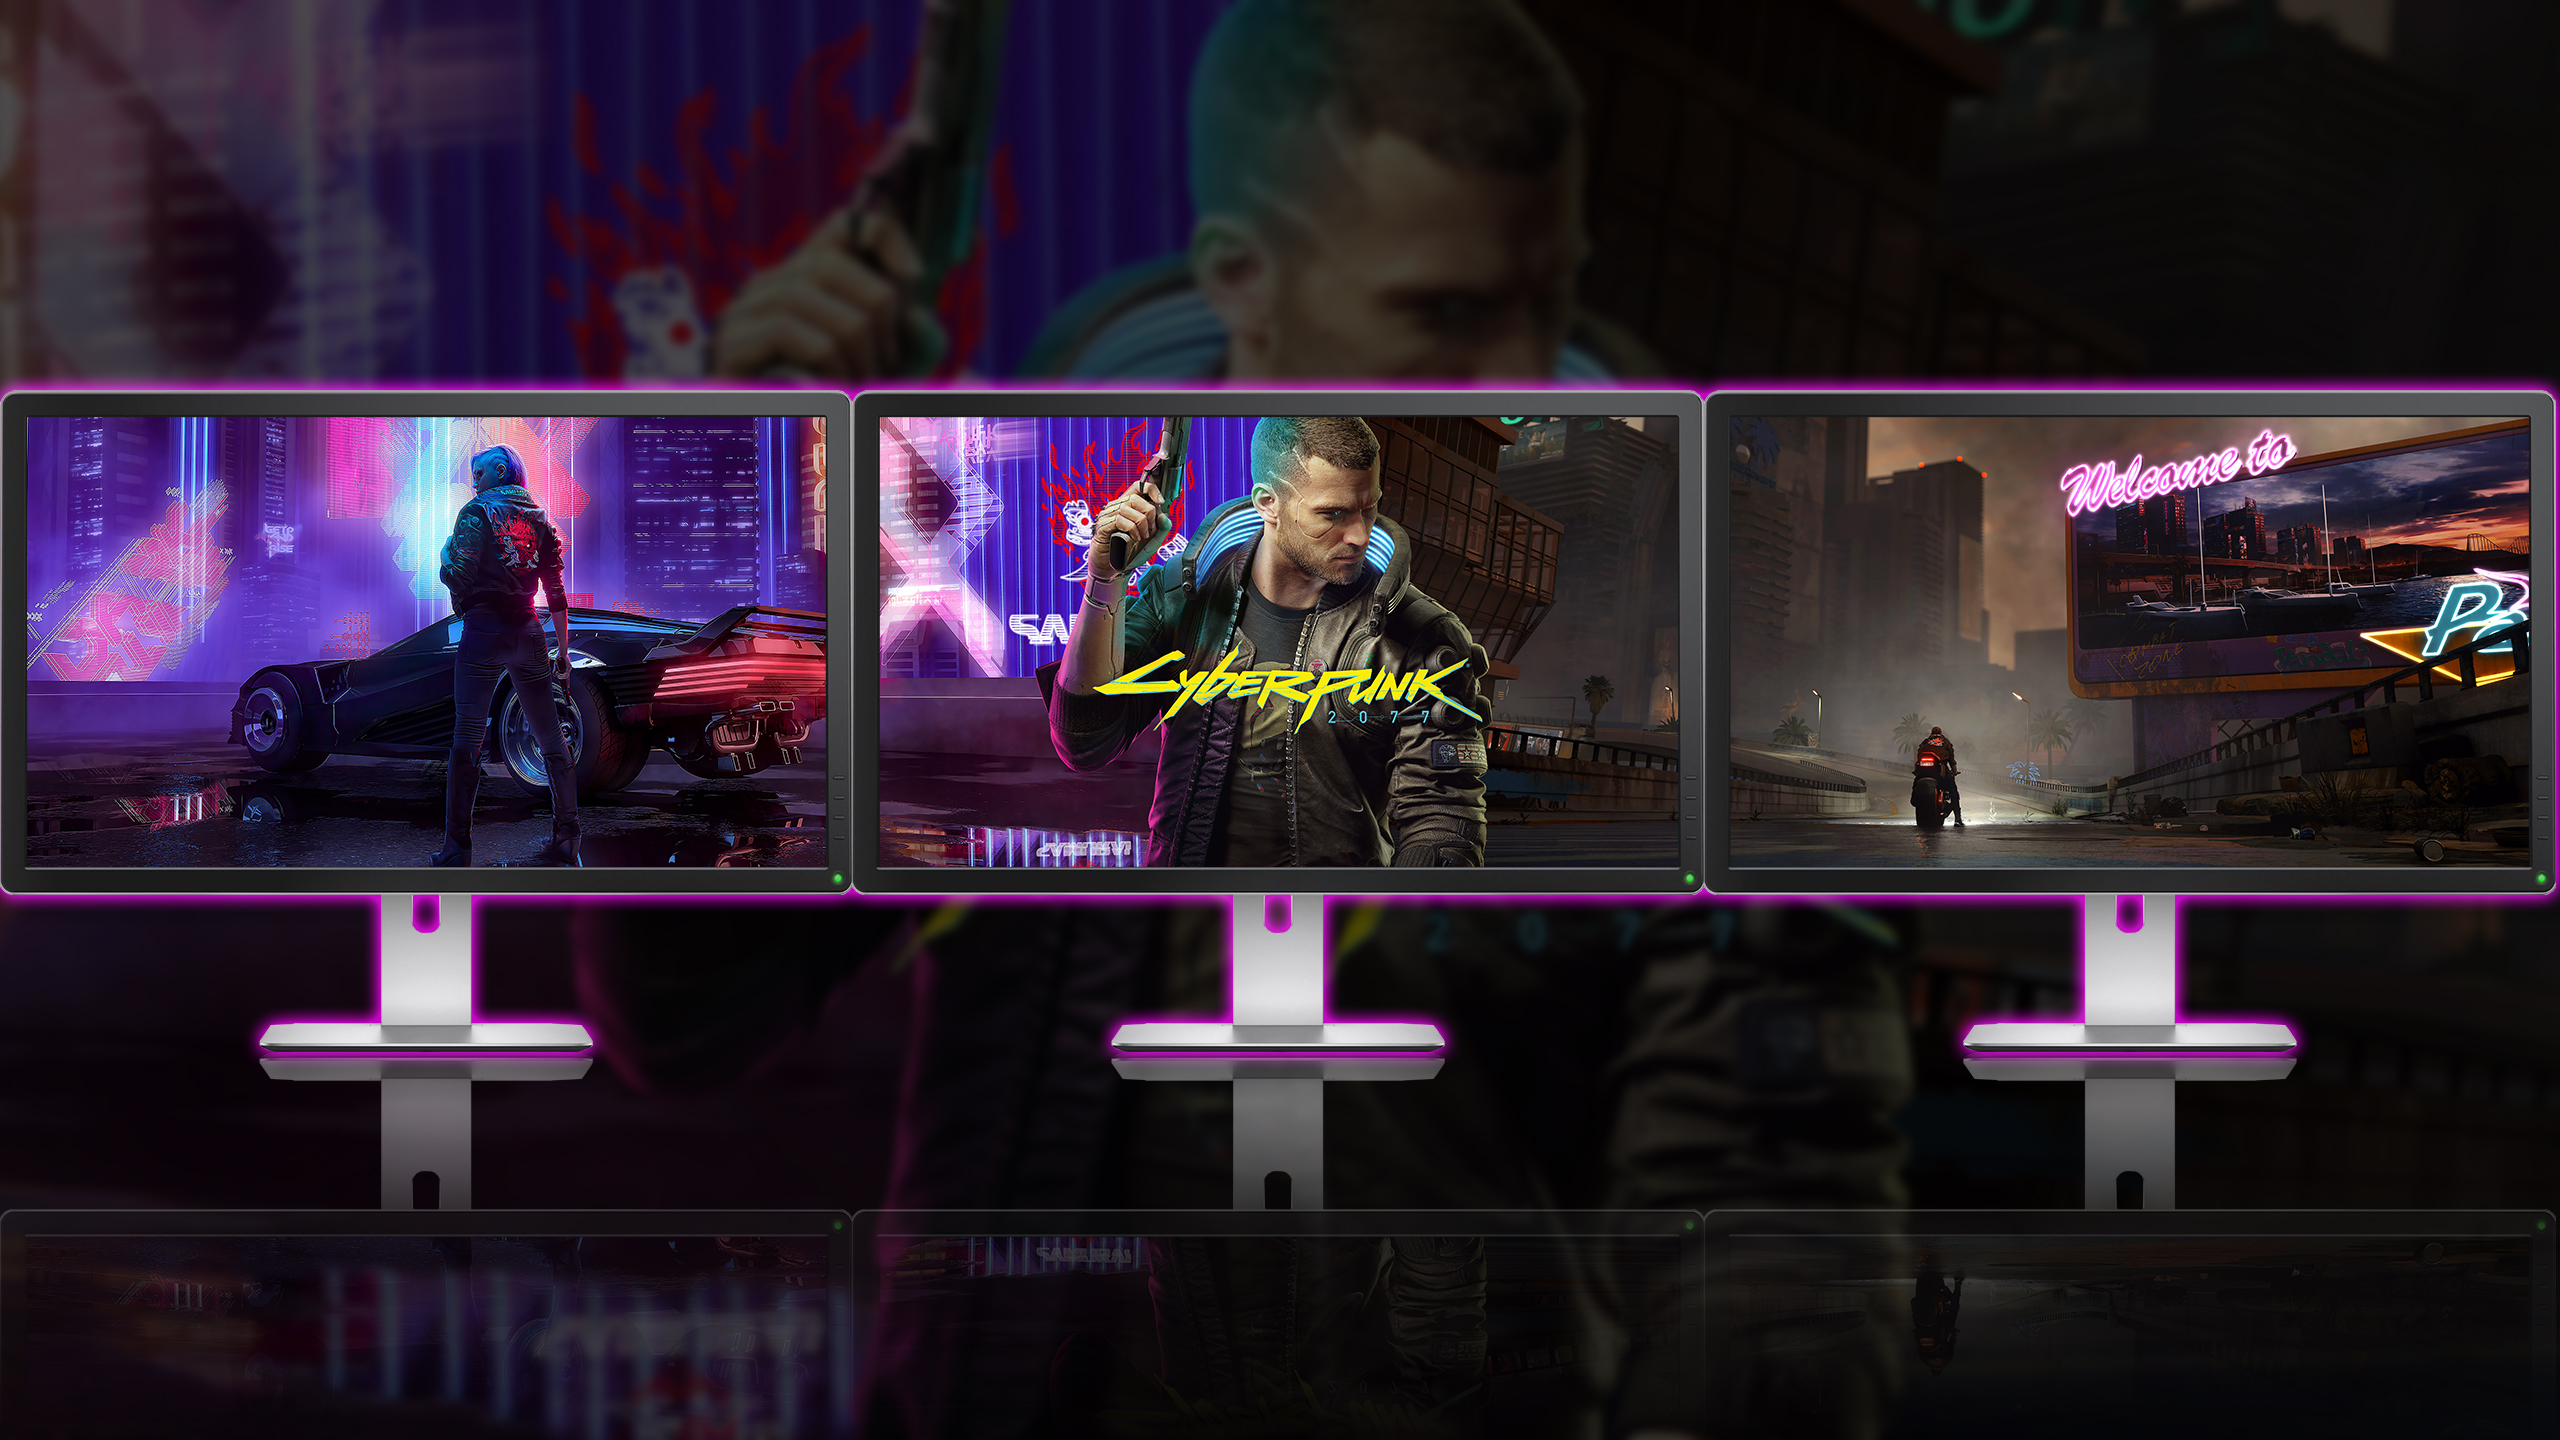 CyberPunk Apercu 3 monitors copie.jpg